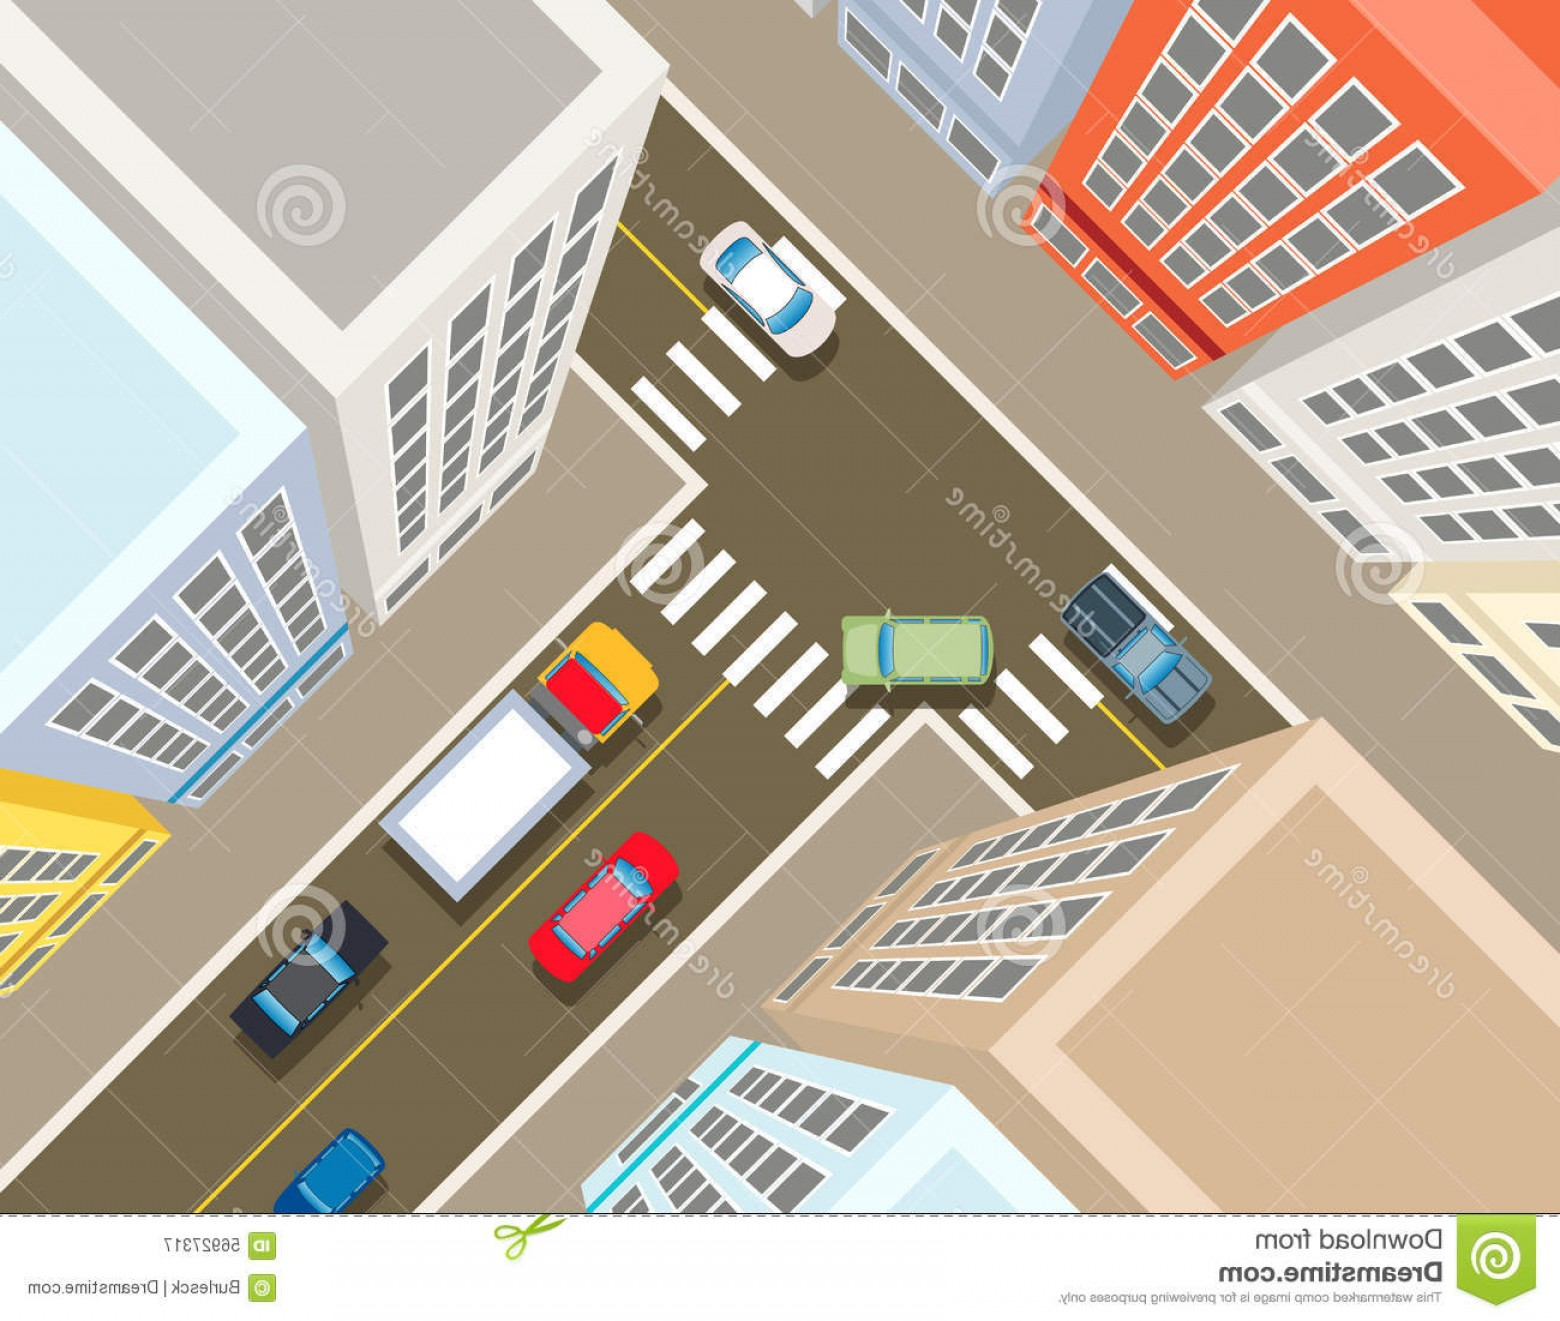 City Building Vector Free Download: Stock Illustration Crossroads City Top View Transport Car Urban Asphalt Traffic Building Vector Illustration Image